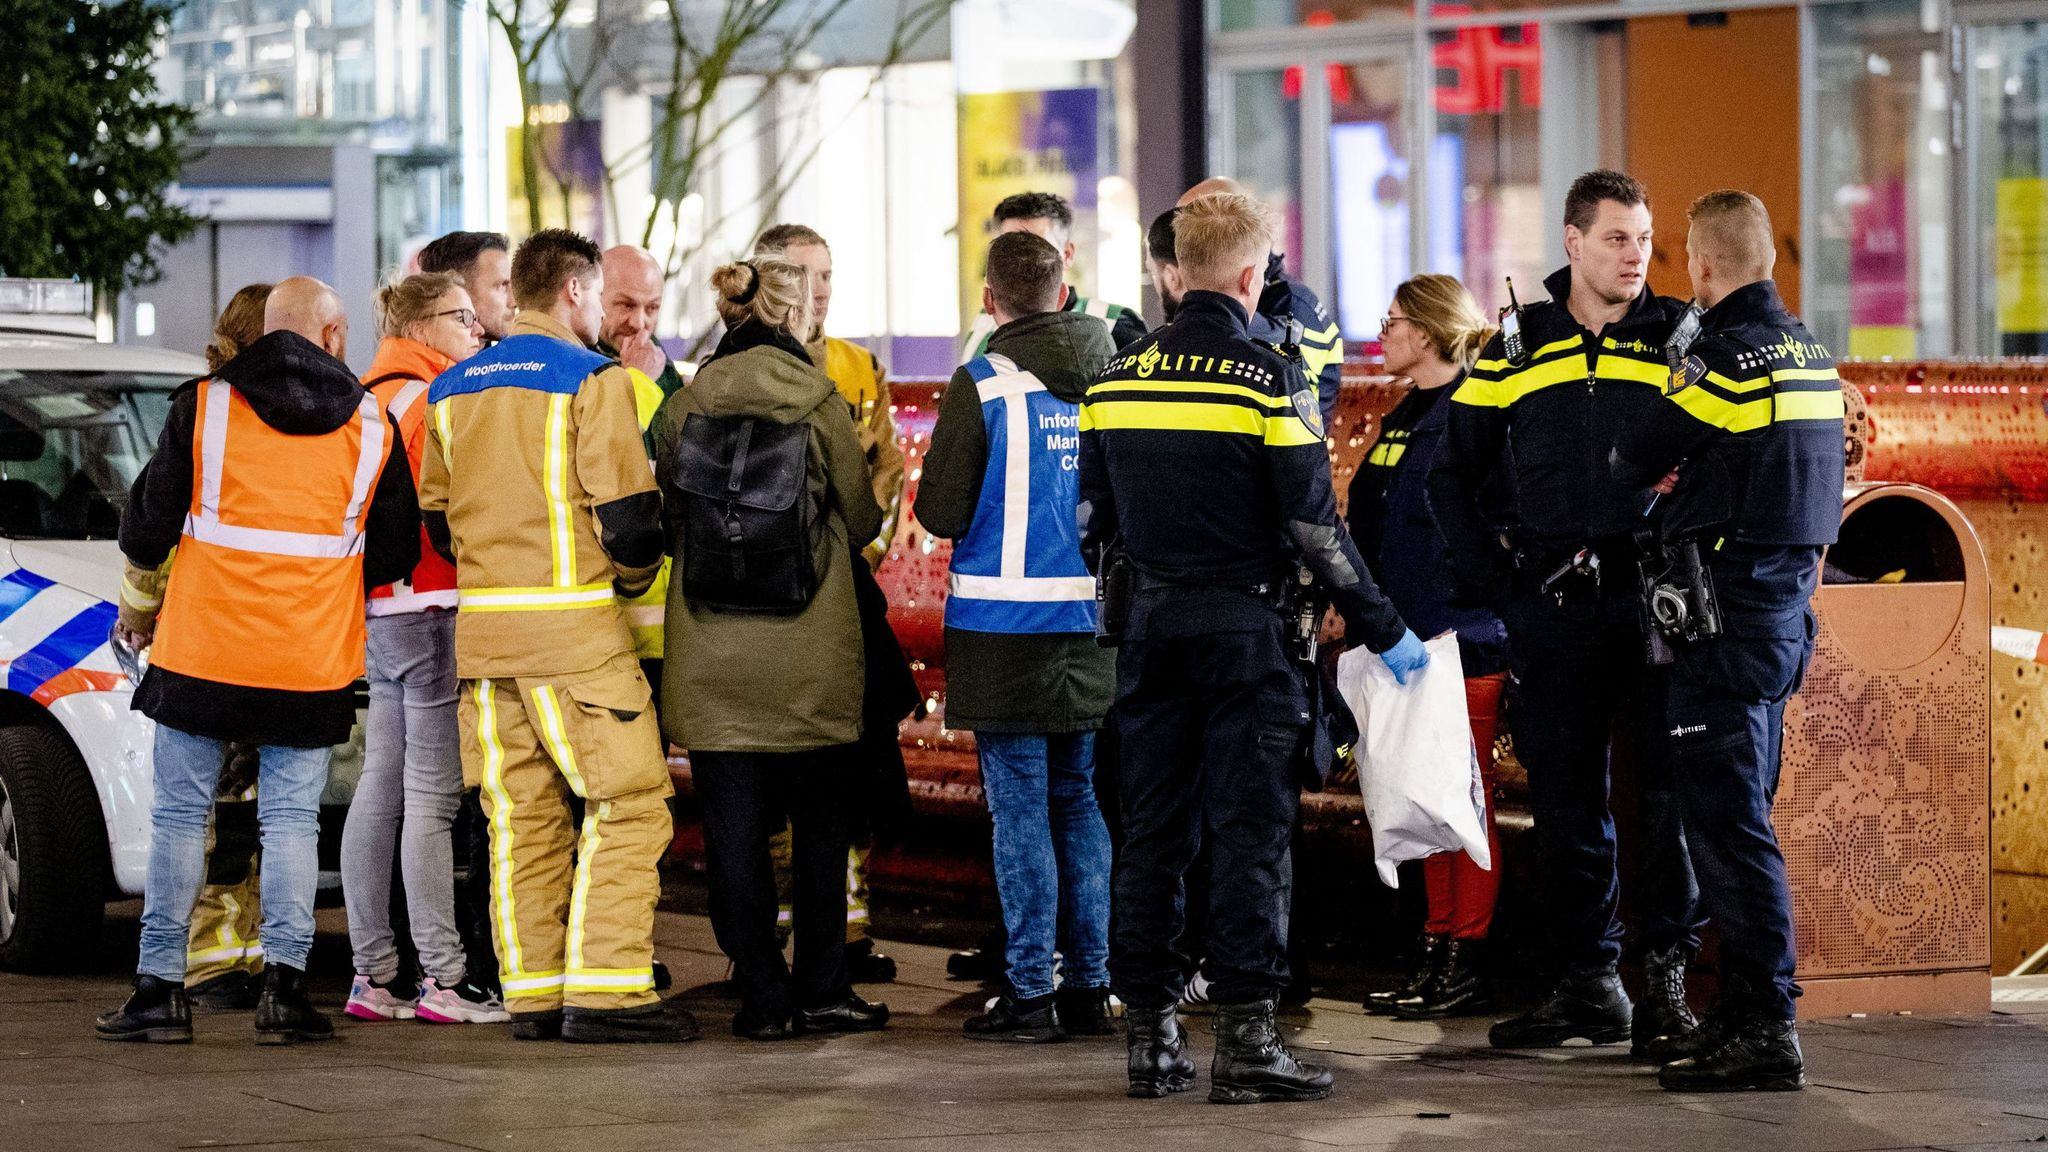 The Hague stabbings: Homeless man arrested after three teens injured